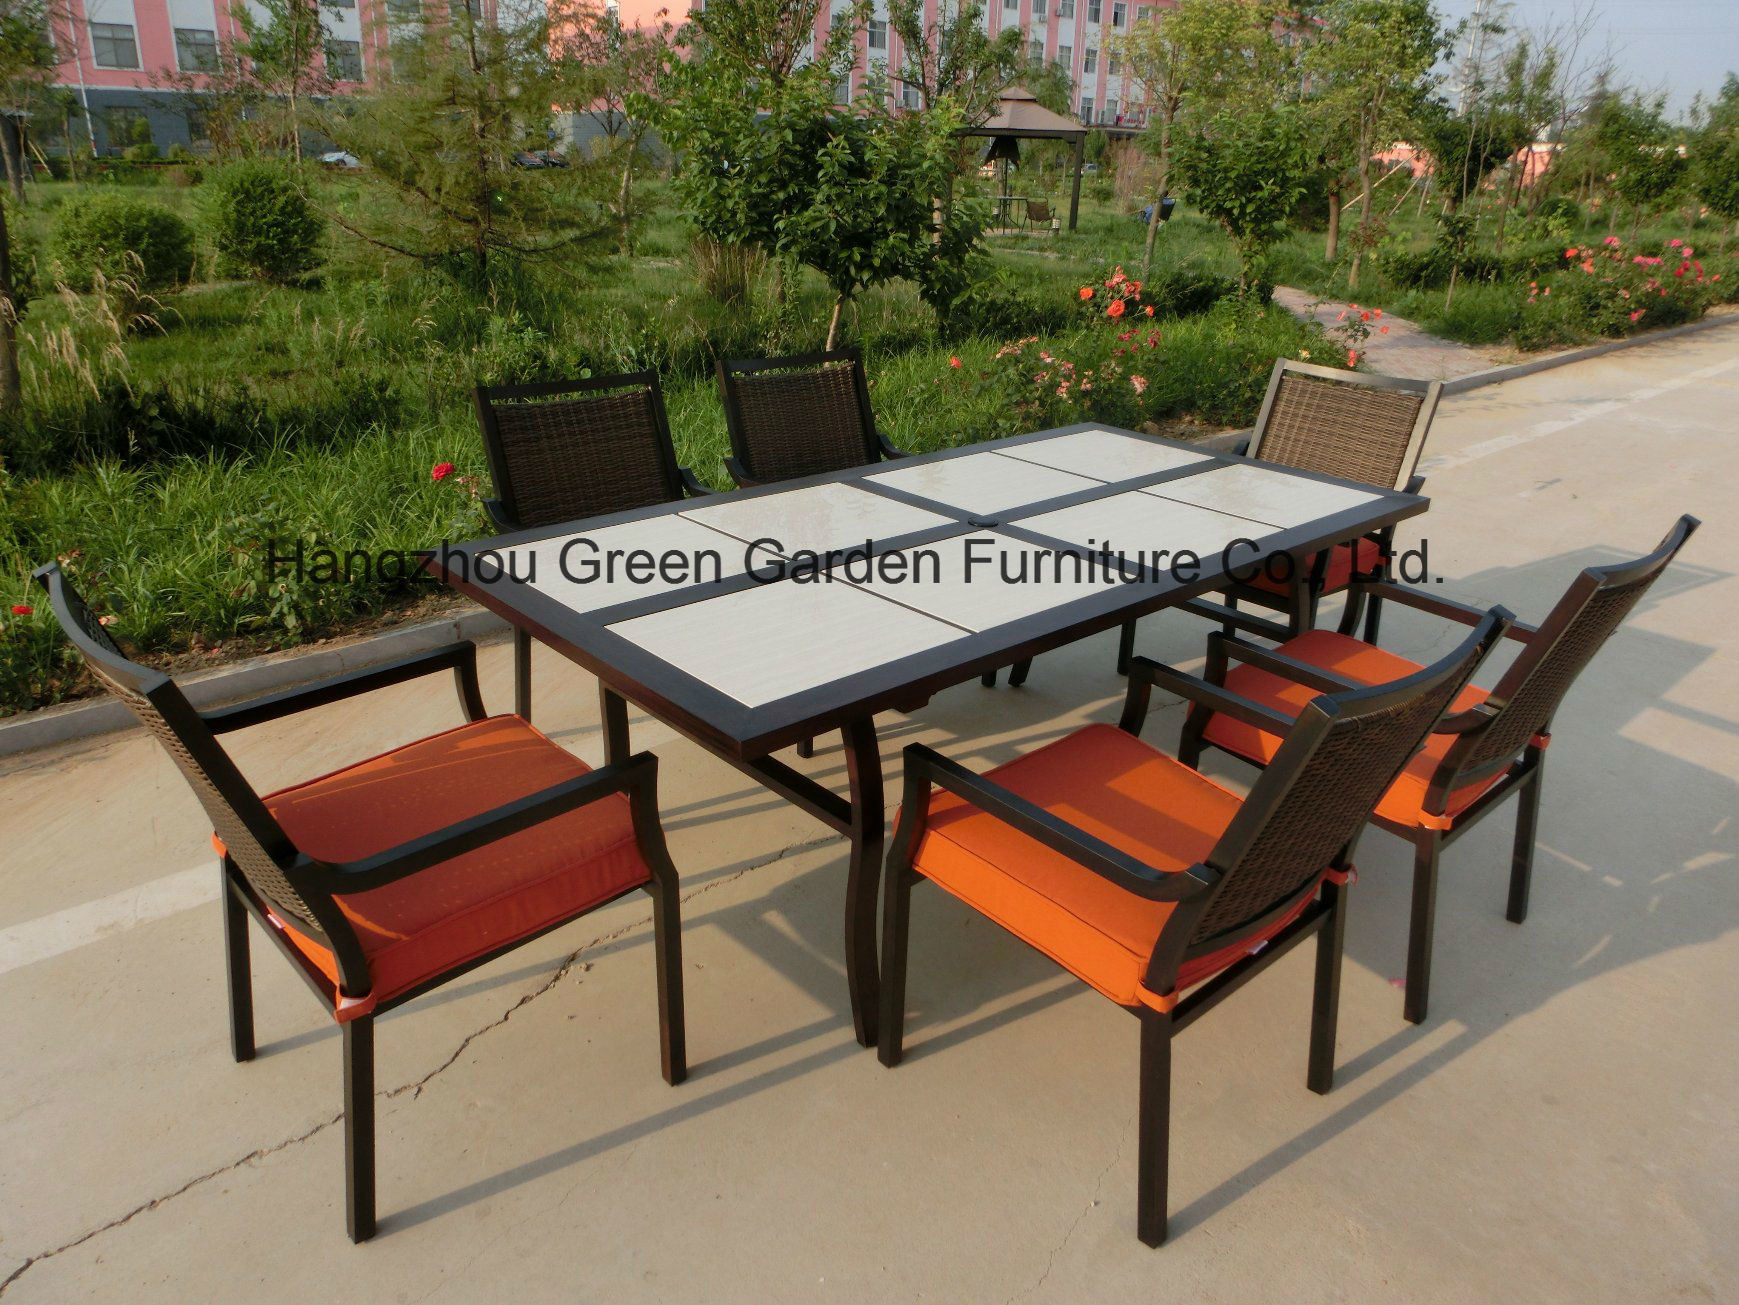 Patio Garden Furniture Dining Set with Ceramic Table & Wicker Chair